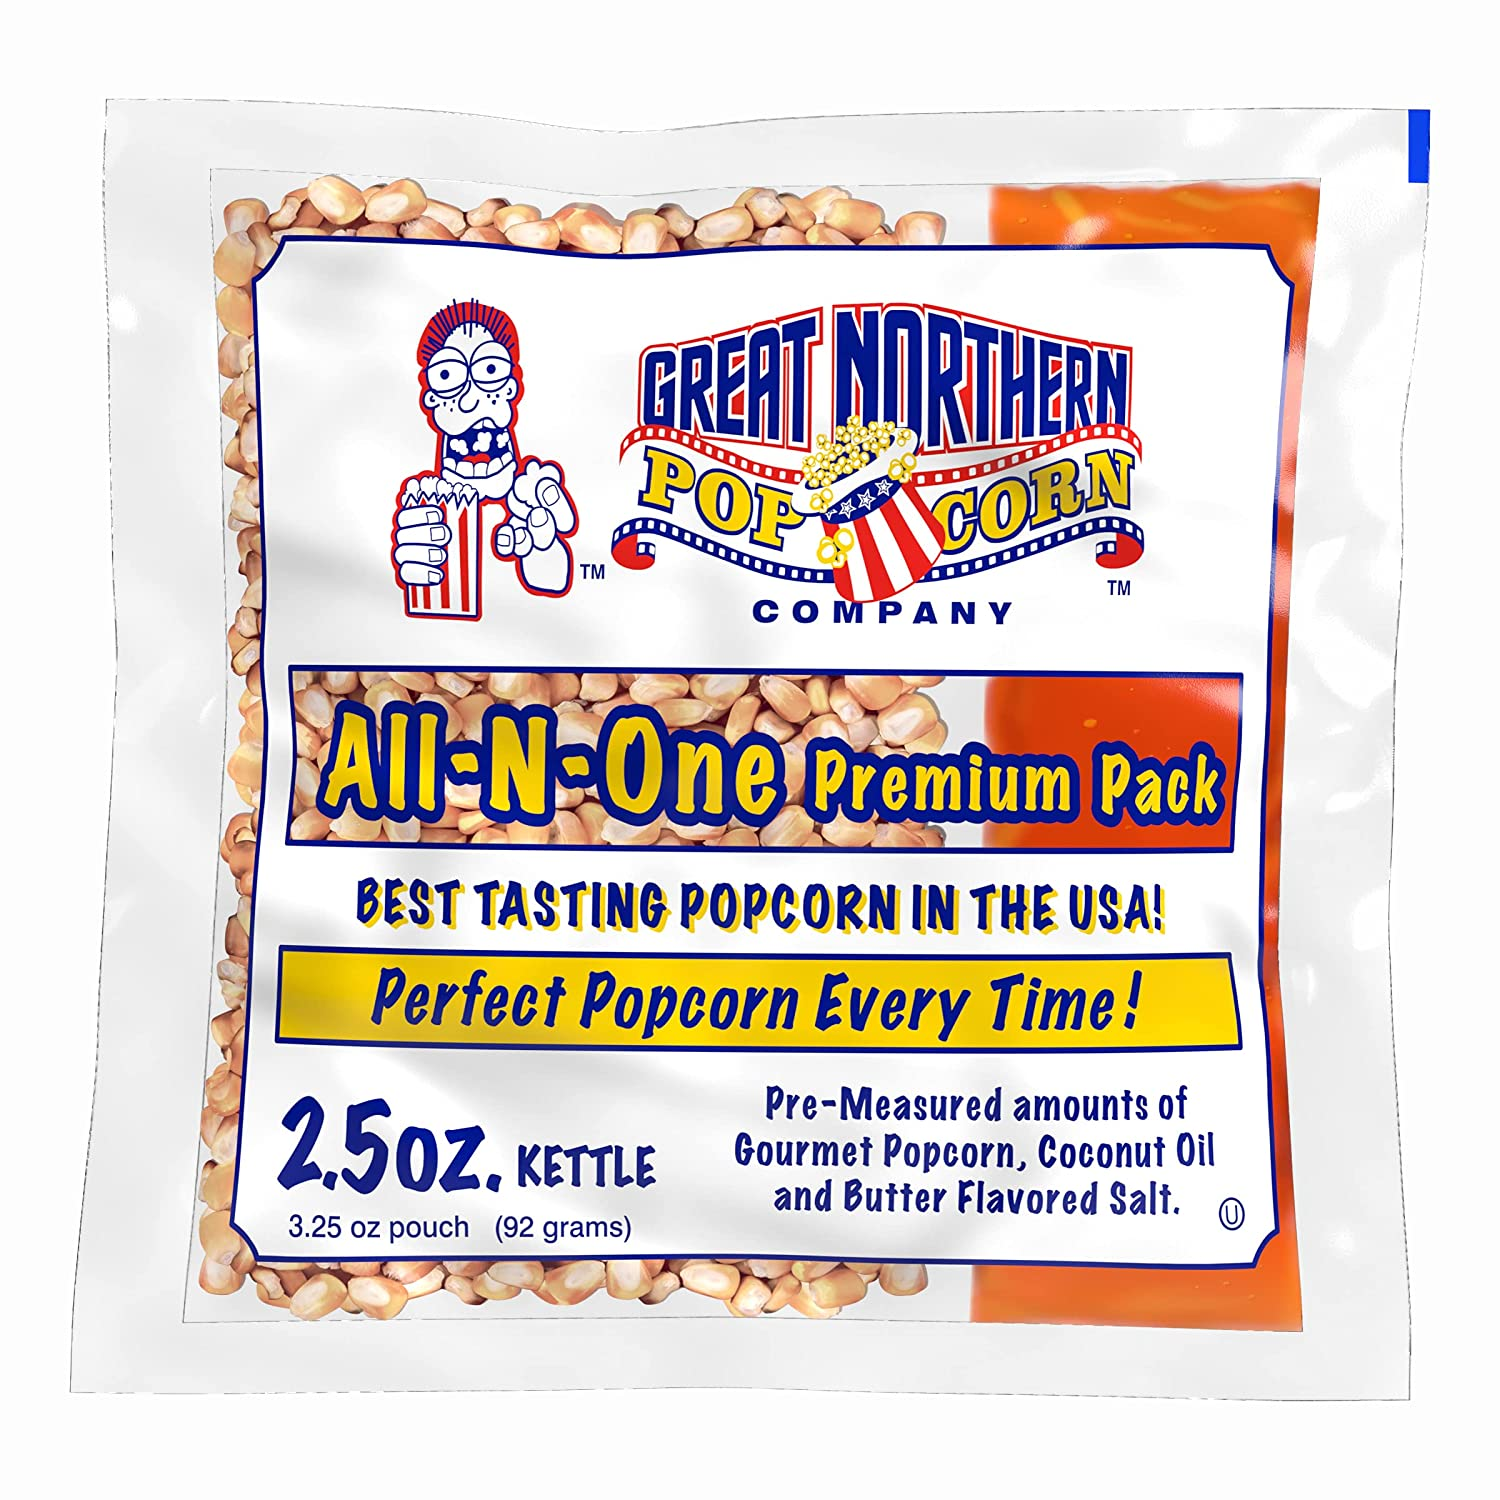 Great Northern Popcorn Company 2.5 oz Popcorn Pack – Pre-Measured, Movie Theater Style, All-in-One Kernel, Salt, Oil Packets for Popcorn Machines by Great Northern Popcorn Company (40 Case)